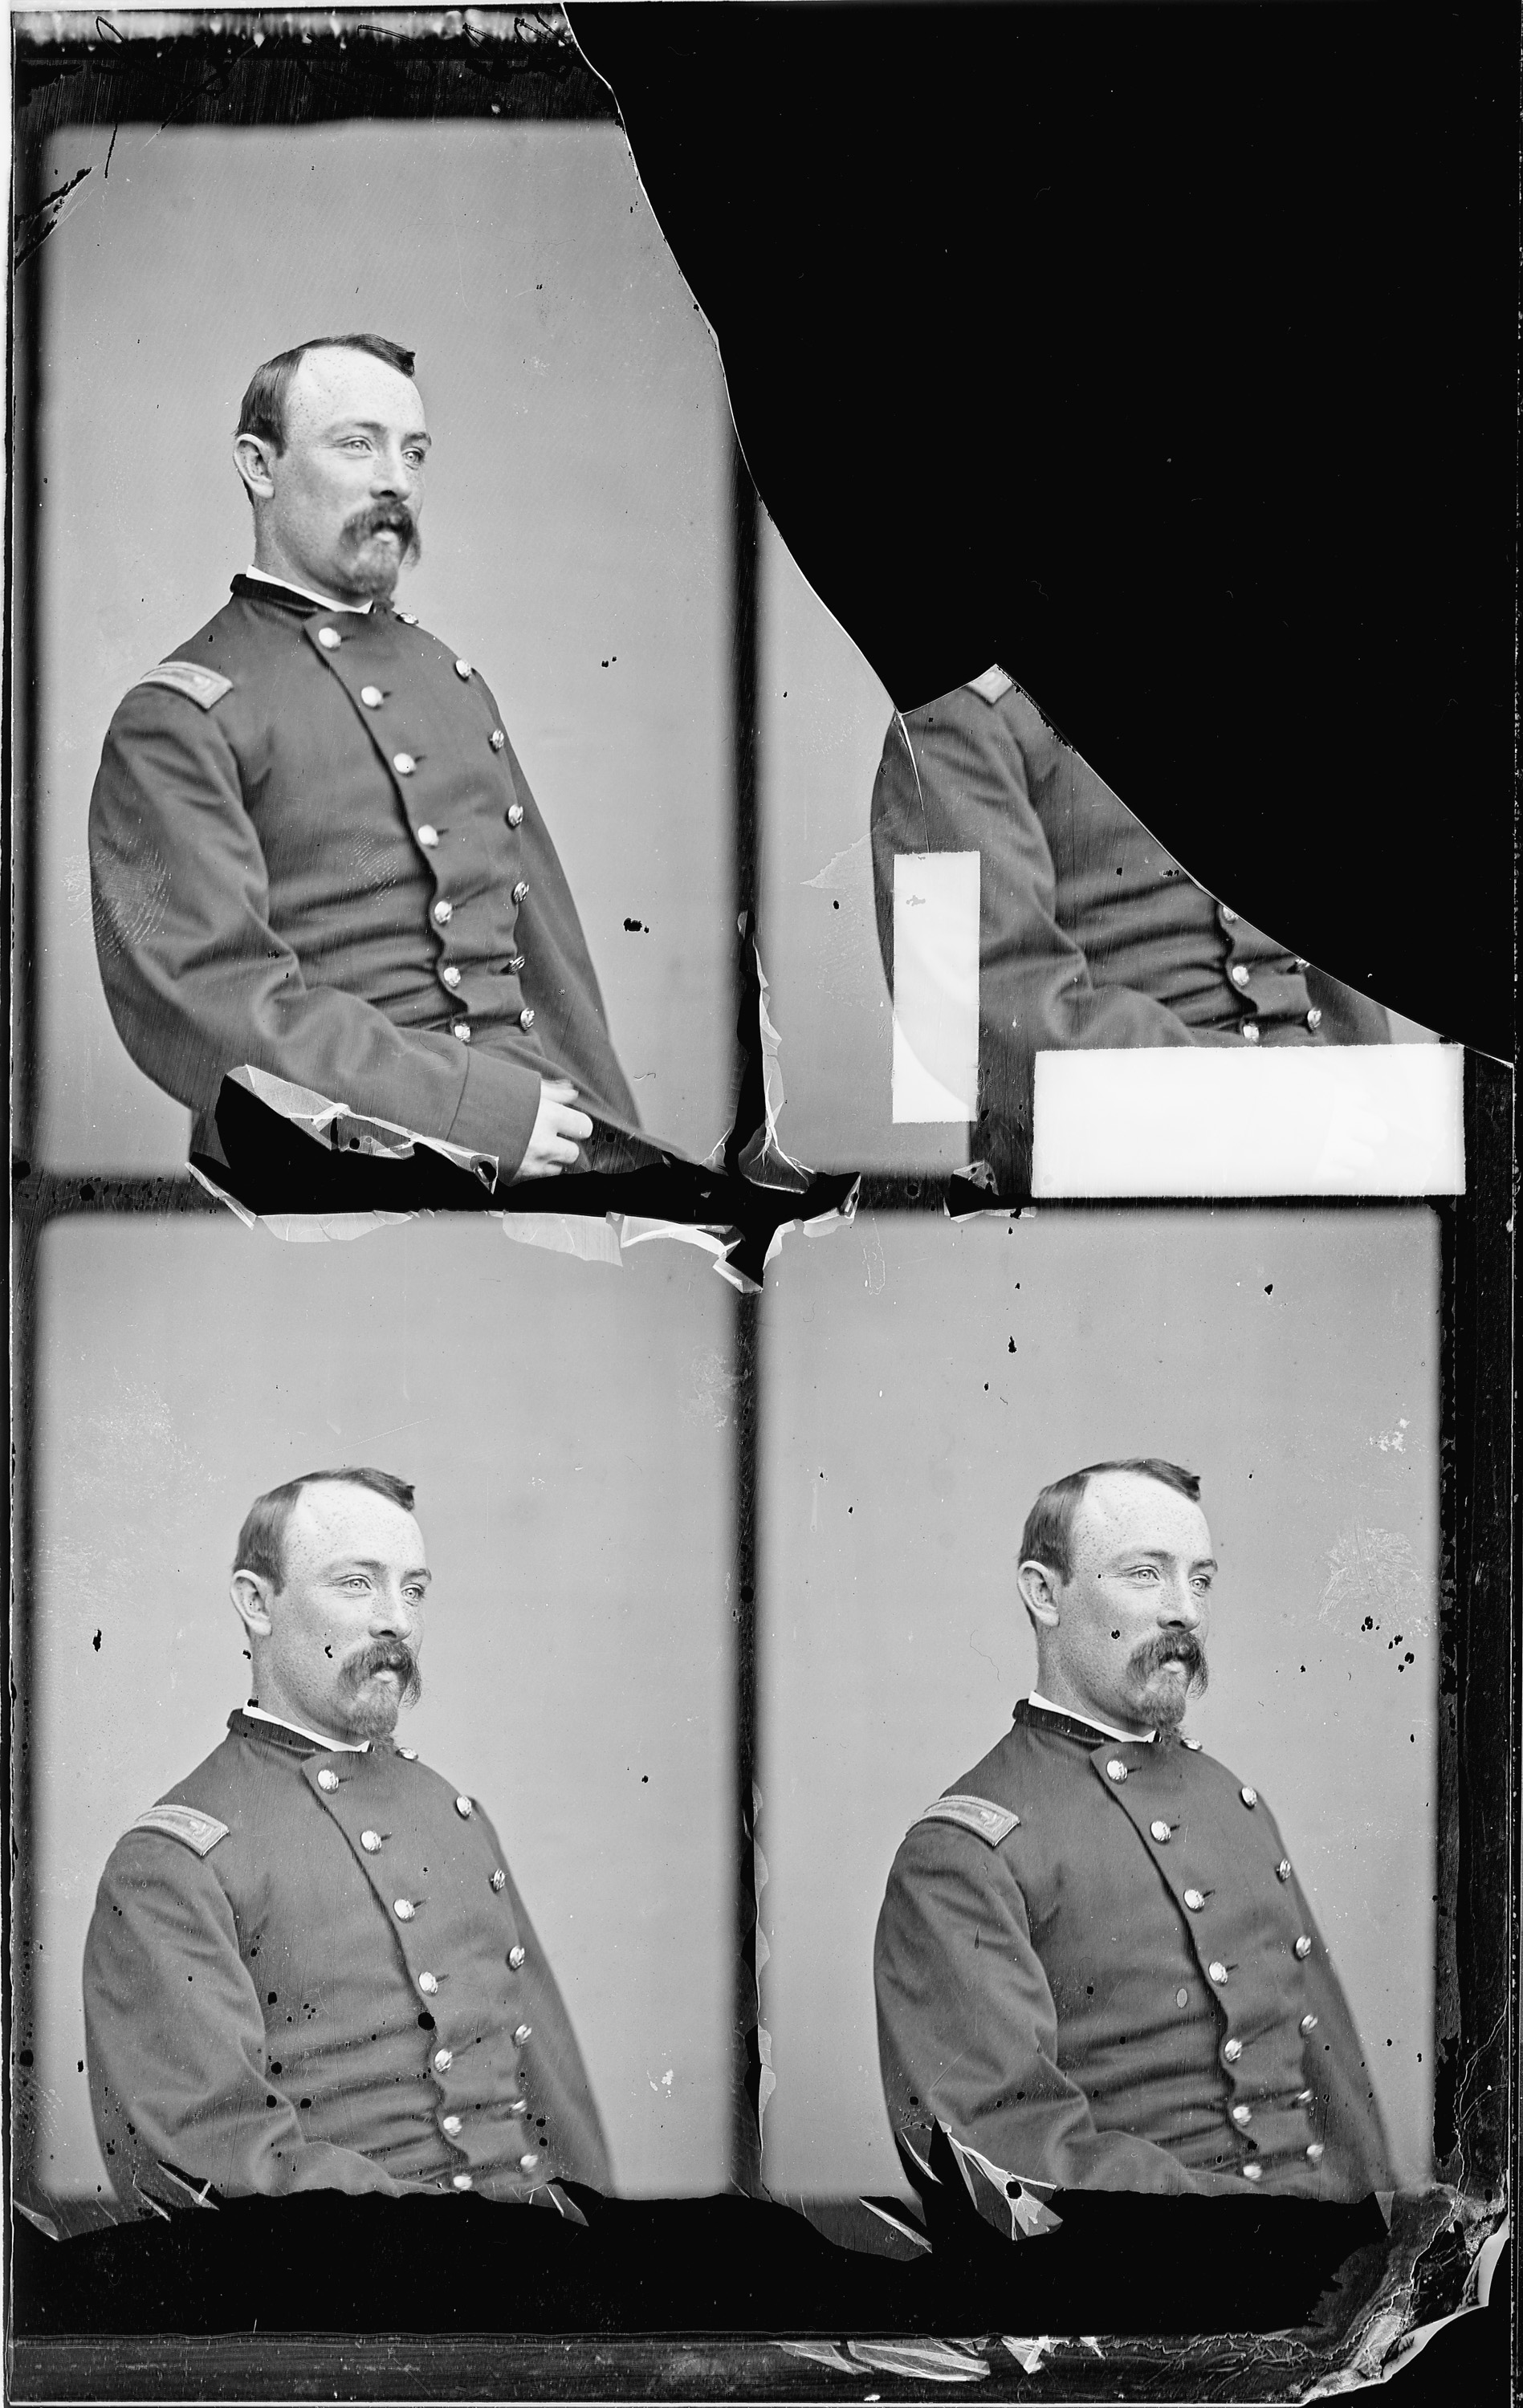 Colonel James E. Mallon, of the 42nd New York Infantry